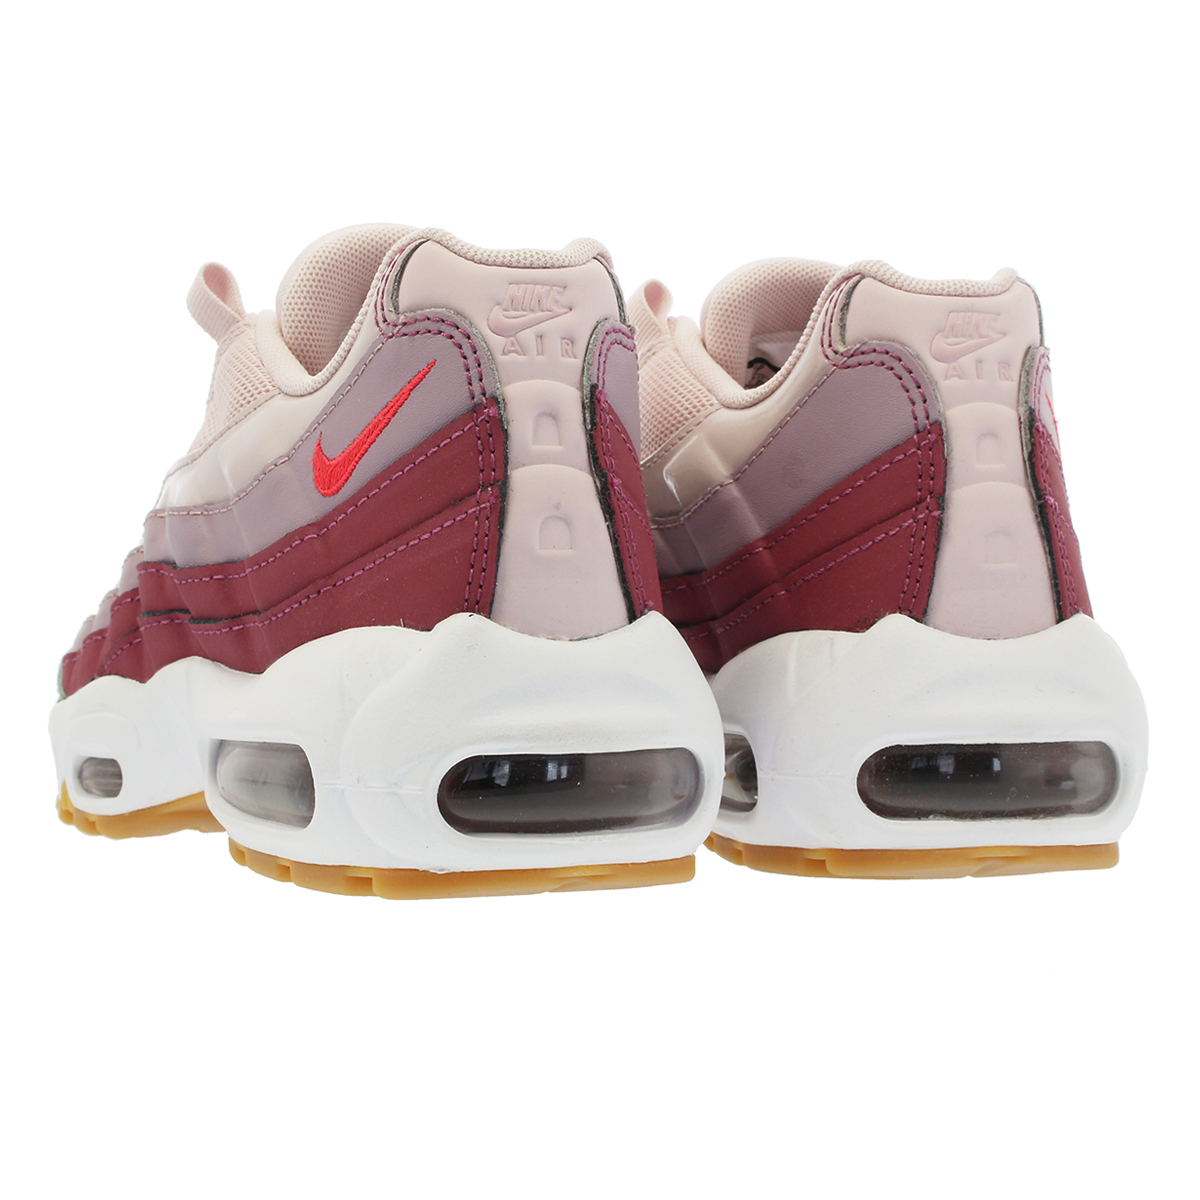 793a73dbb67f NIKE WMNS AIR MAX 95 Nike women Air Max 95 BARELY ROSE HOT PUNCH VINTAGE  WINE WHITE